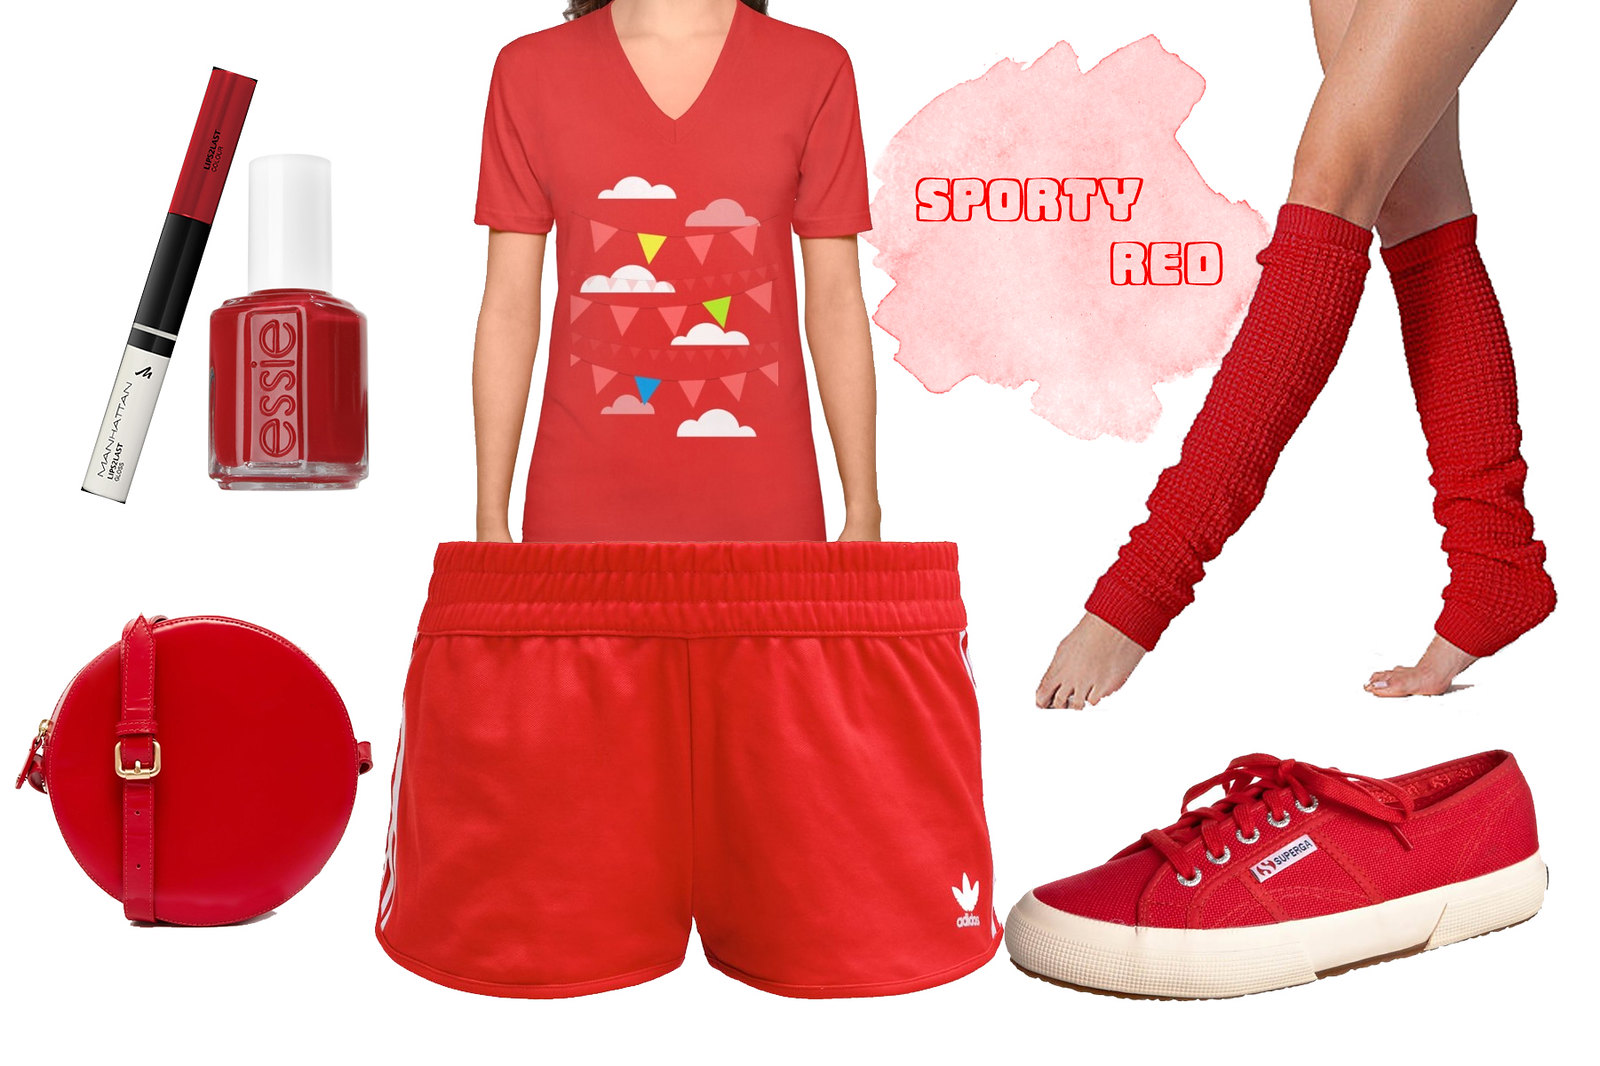 outfit inspiration: choose your color! (red)